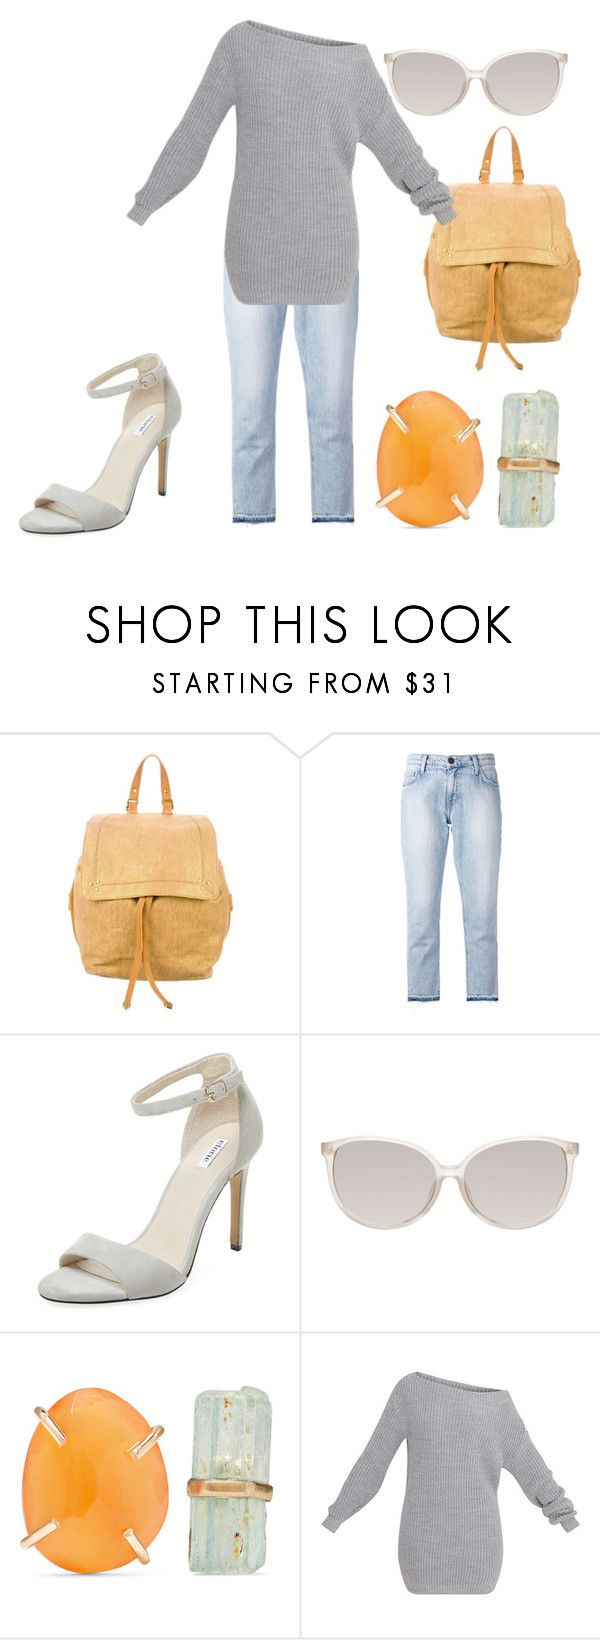 """""""Jeans 2"""" by catherinemairi on Polyvore featuring Jérôme Dreyfuss, Current/Elliott, Elorie, Linda Farrow and Melissa Joy Manning"""